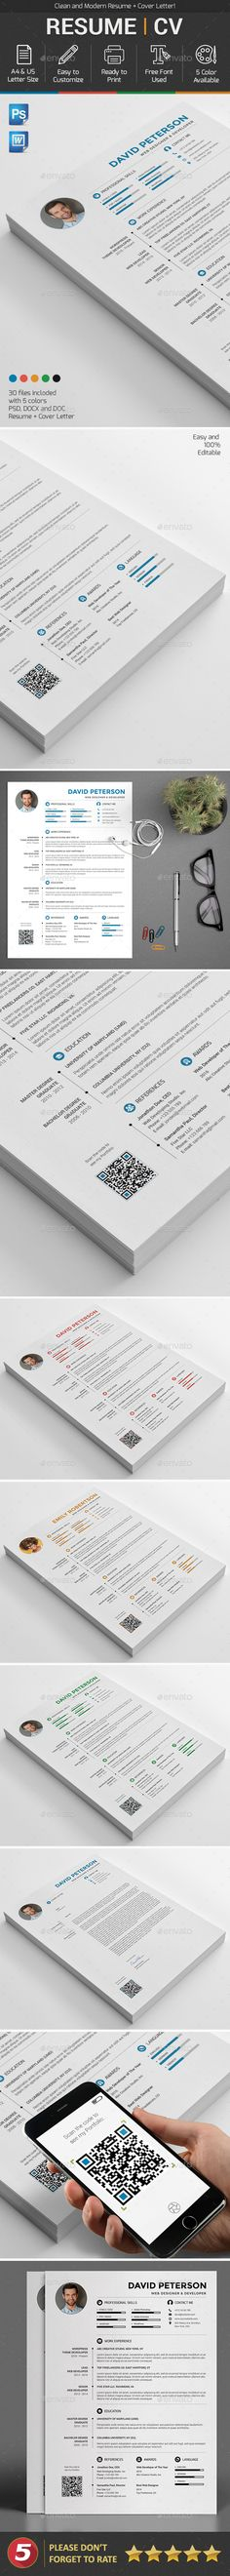 Creative Resume InDesign Template by design emotion